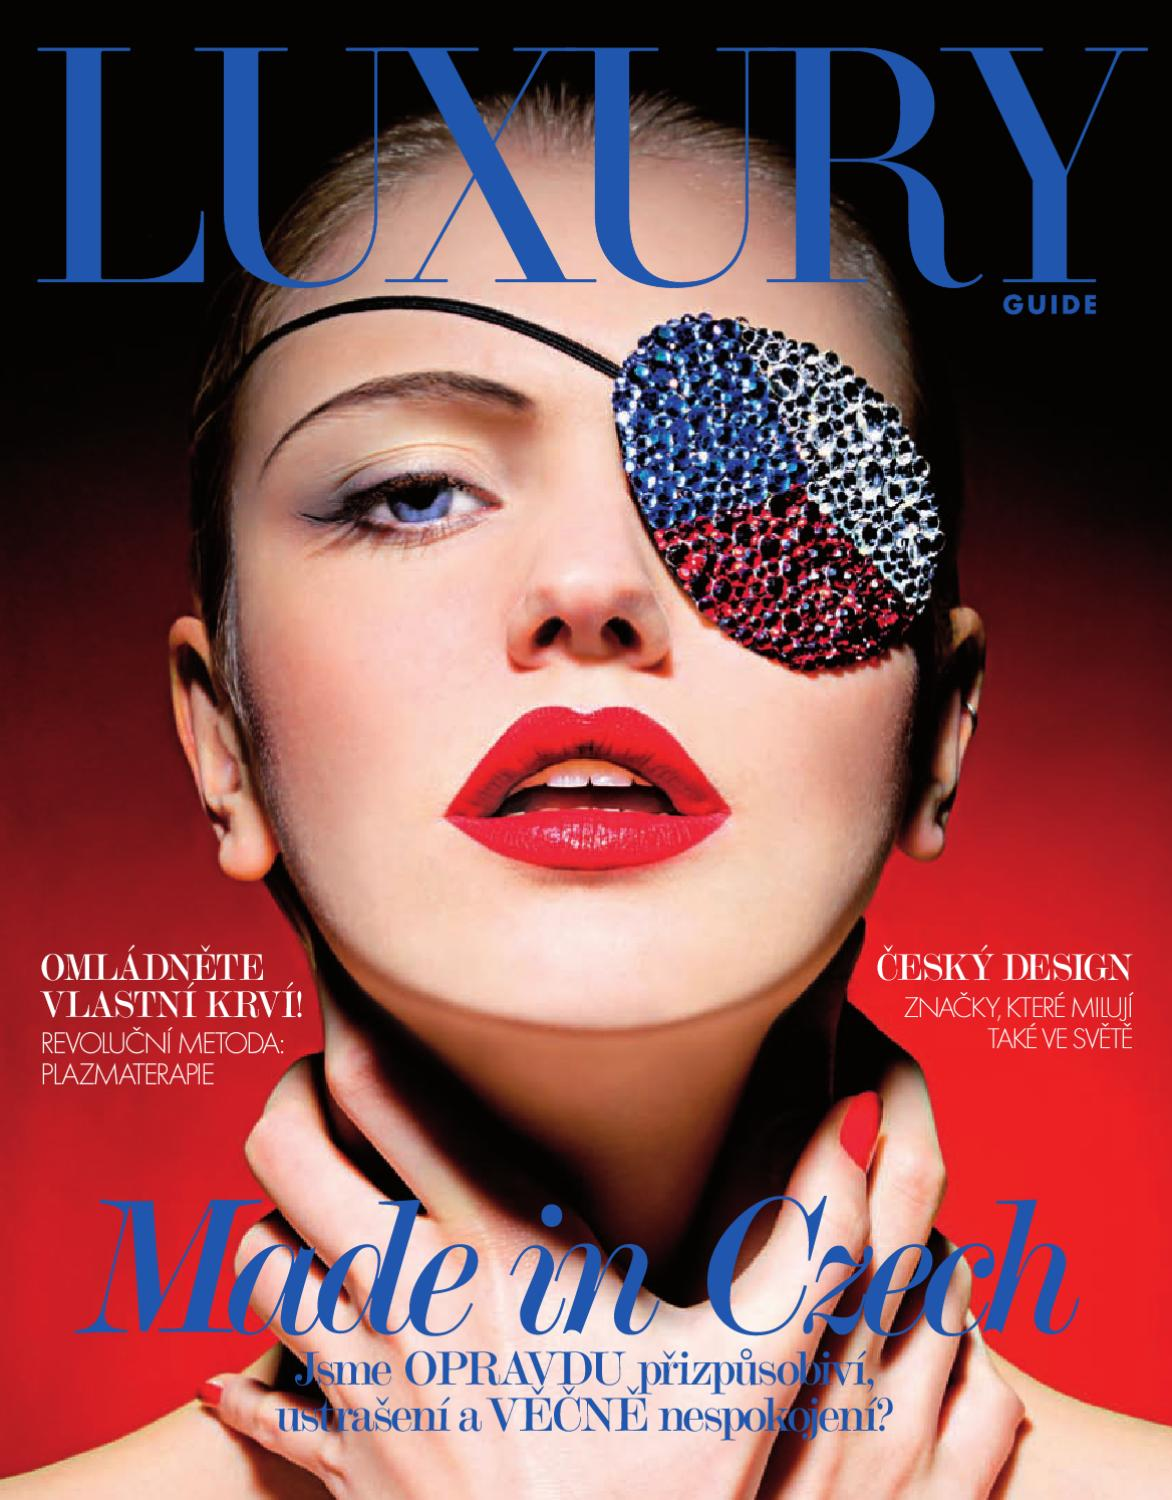 Luxury Guide 11 2011 complete by TomDesign - issuu 9b00ce549a